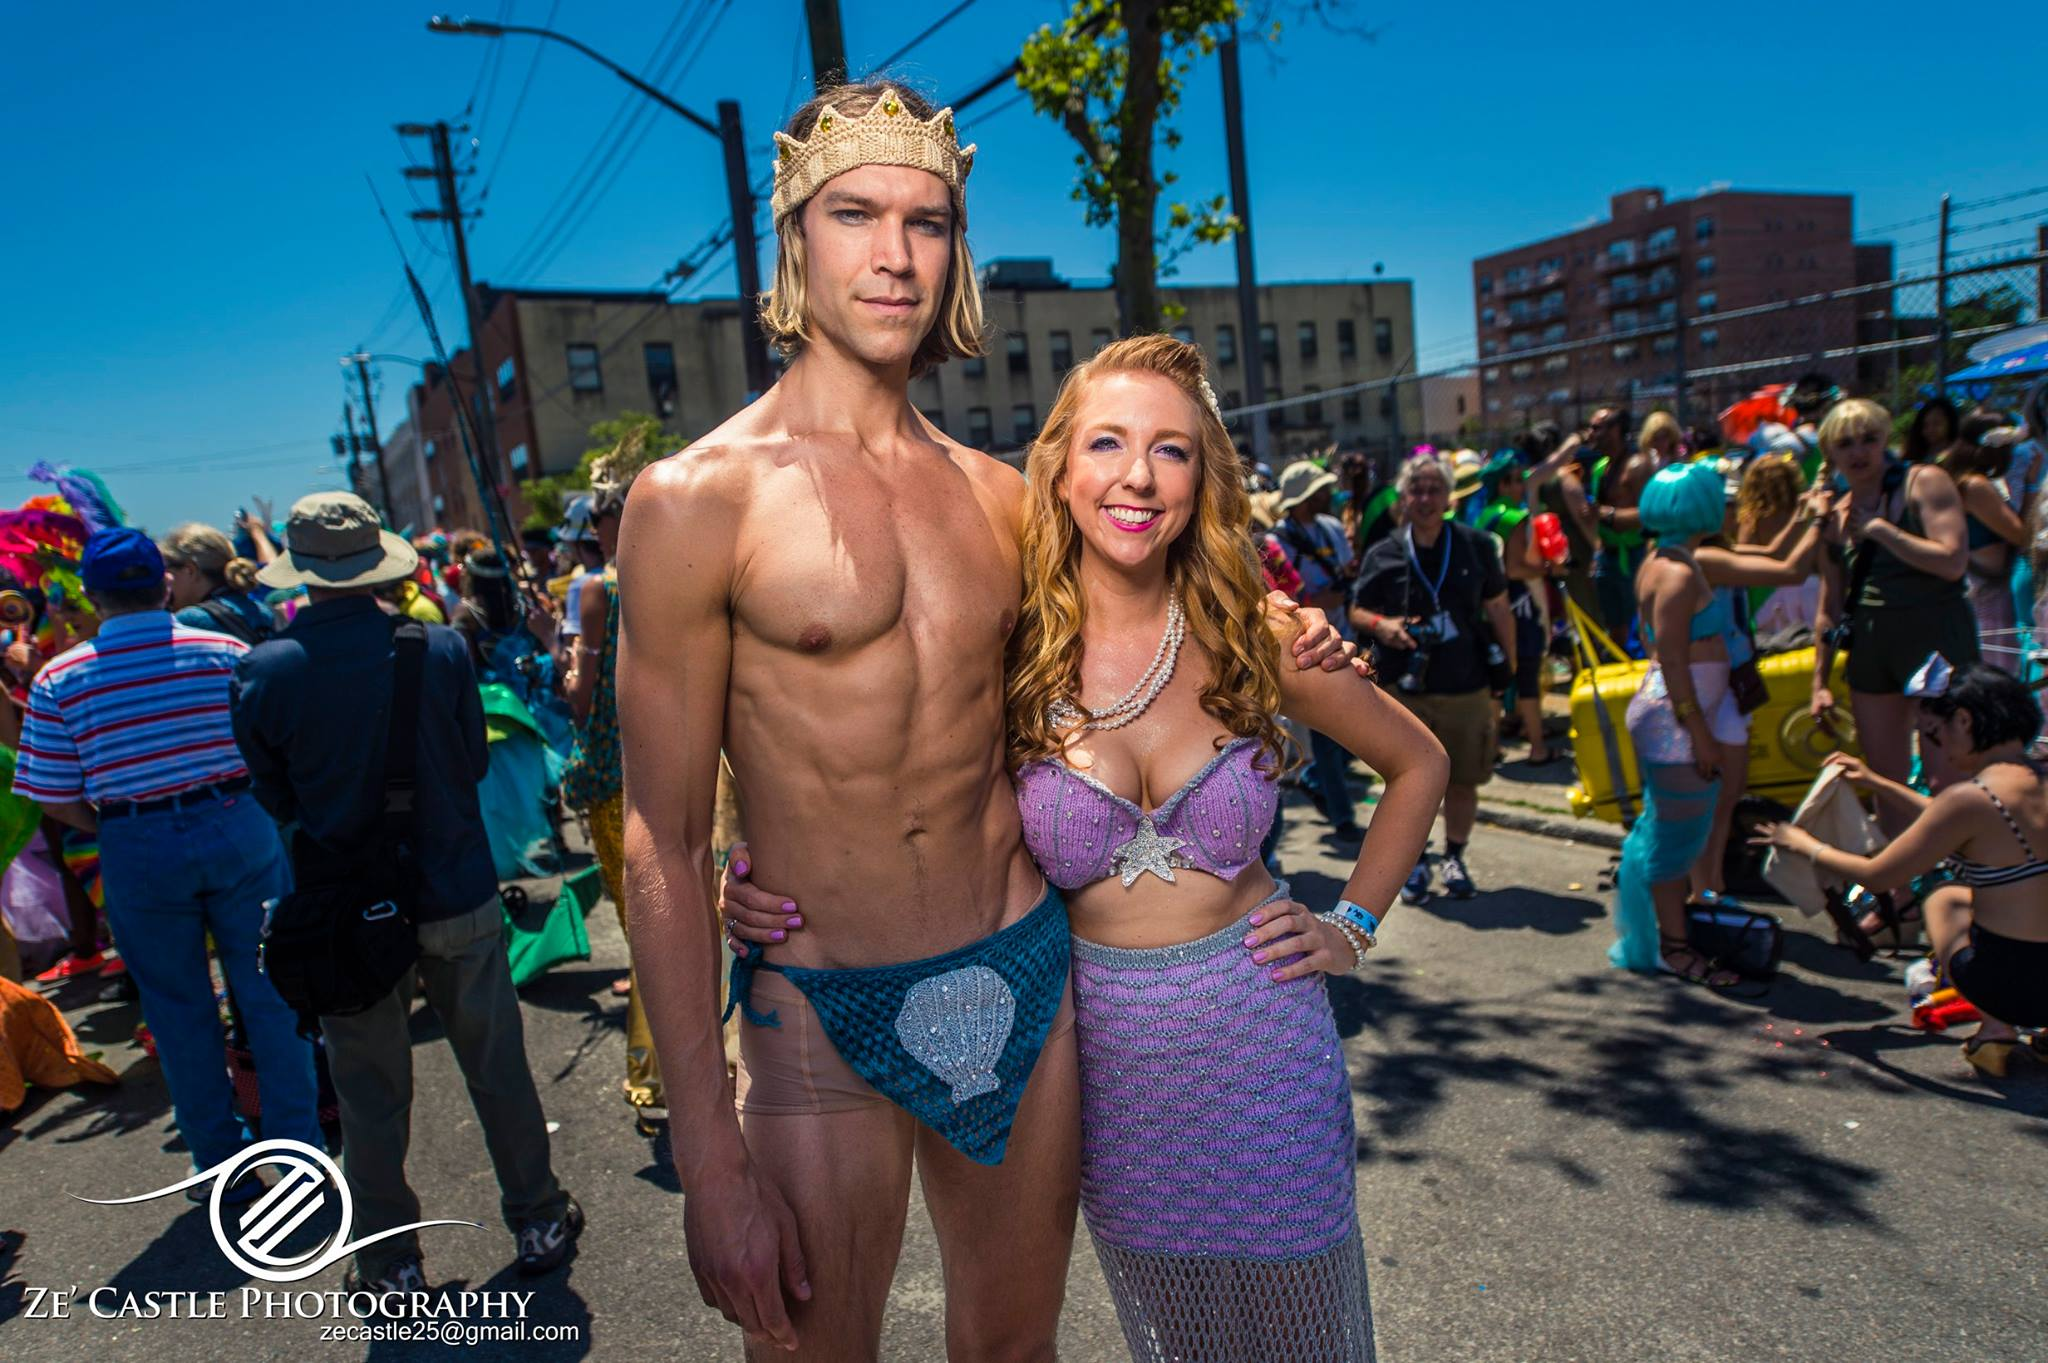 Mermaid costume fail